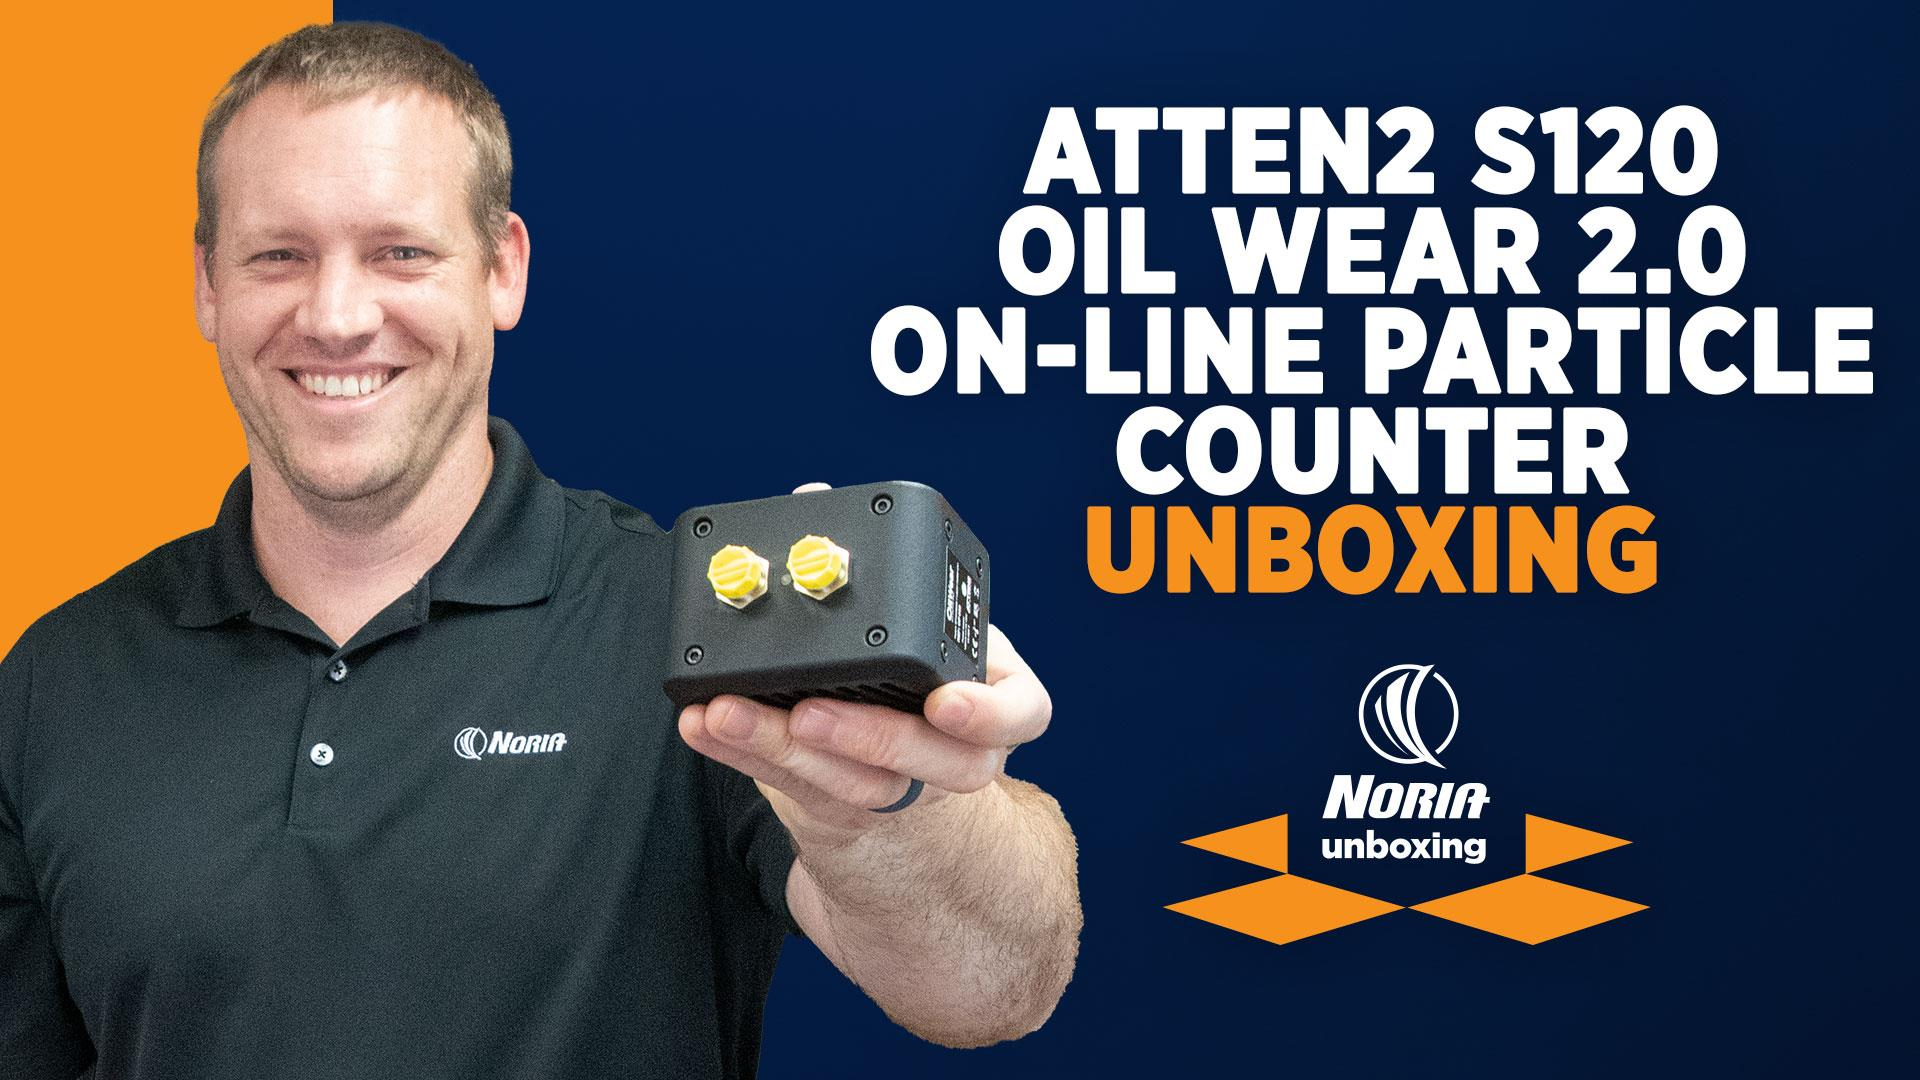 Unboxing: Atten2 S120 Oil Wear 2.0 On-Line Particle Counter